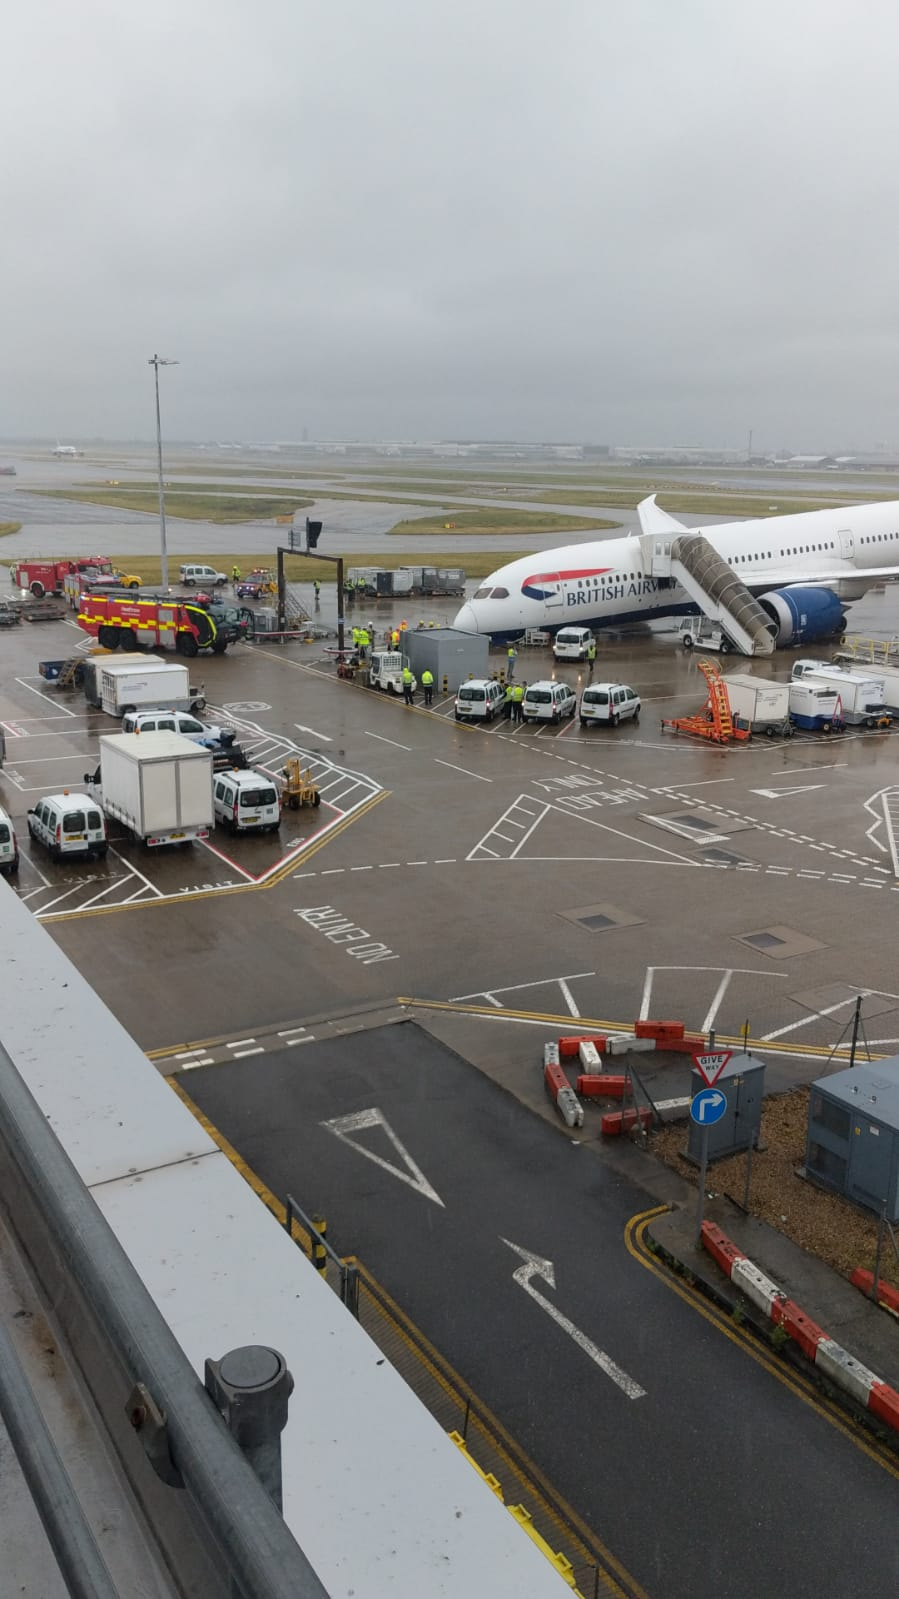 Plane collapses at Heathrow Airport